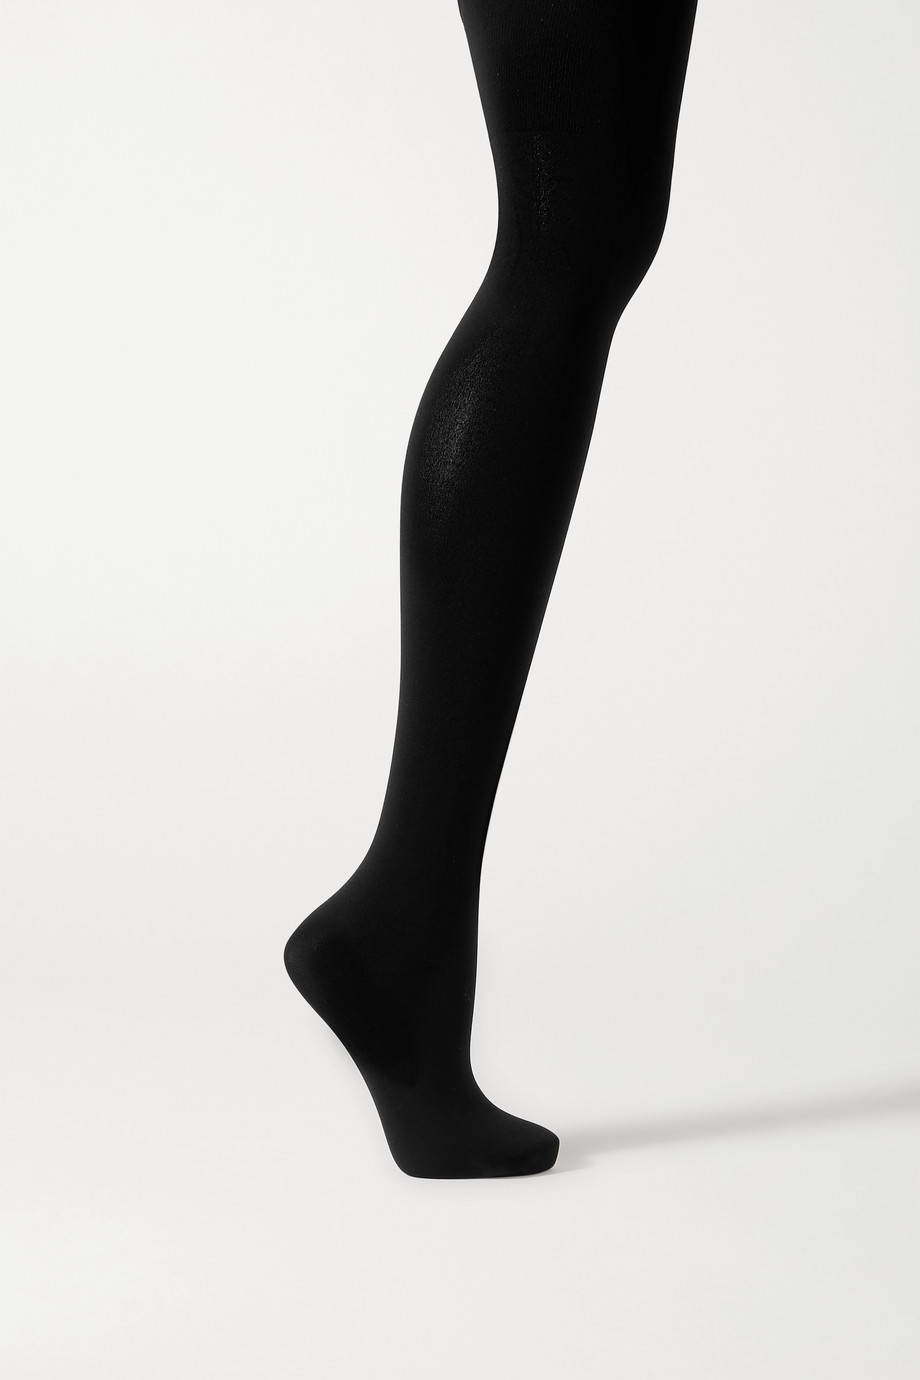 Wolford Tummy Control Top 66 denier tights